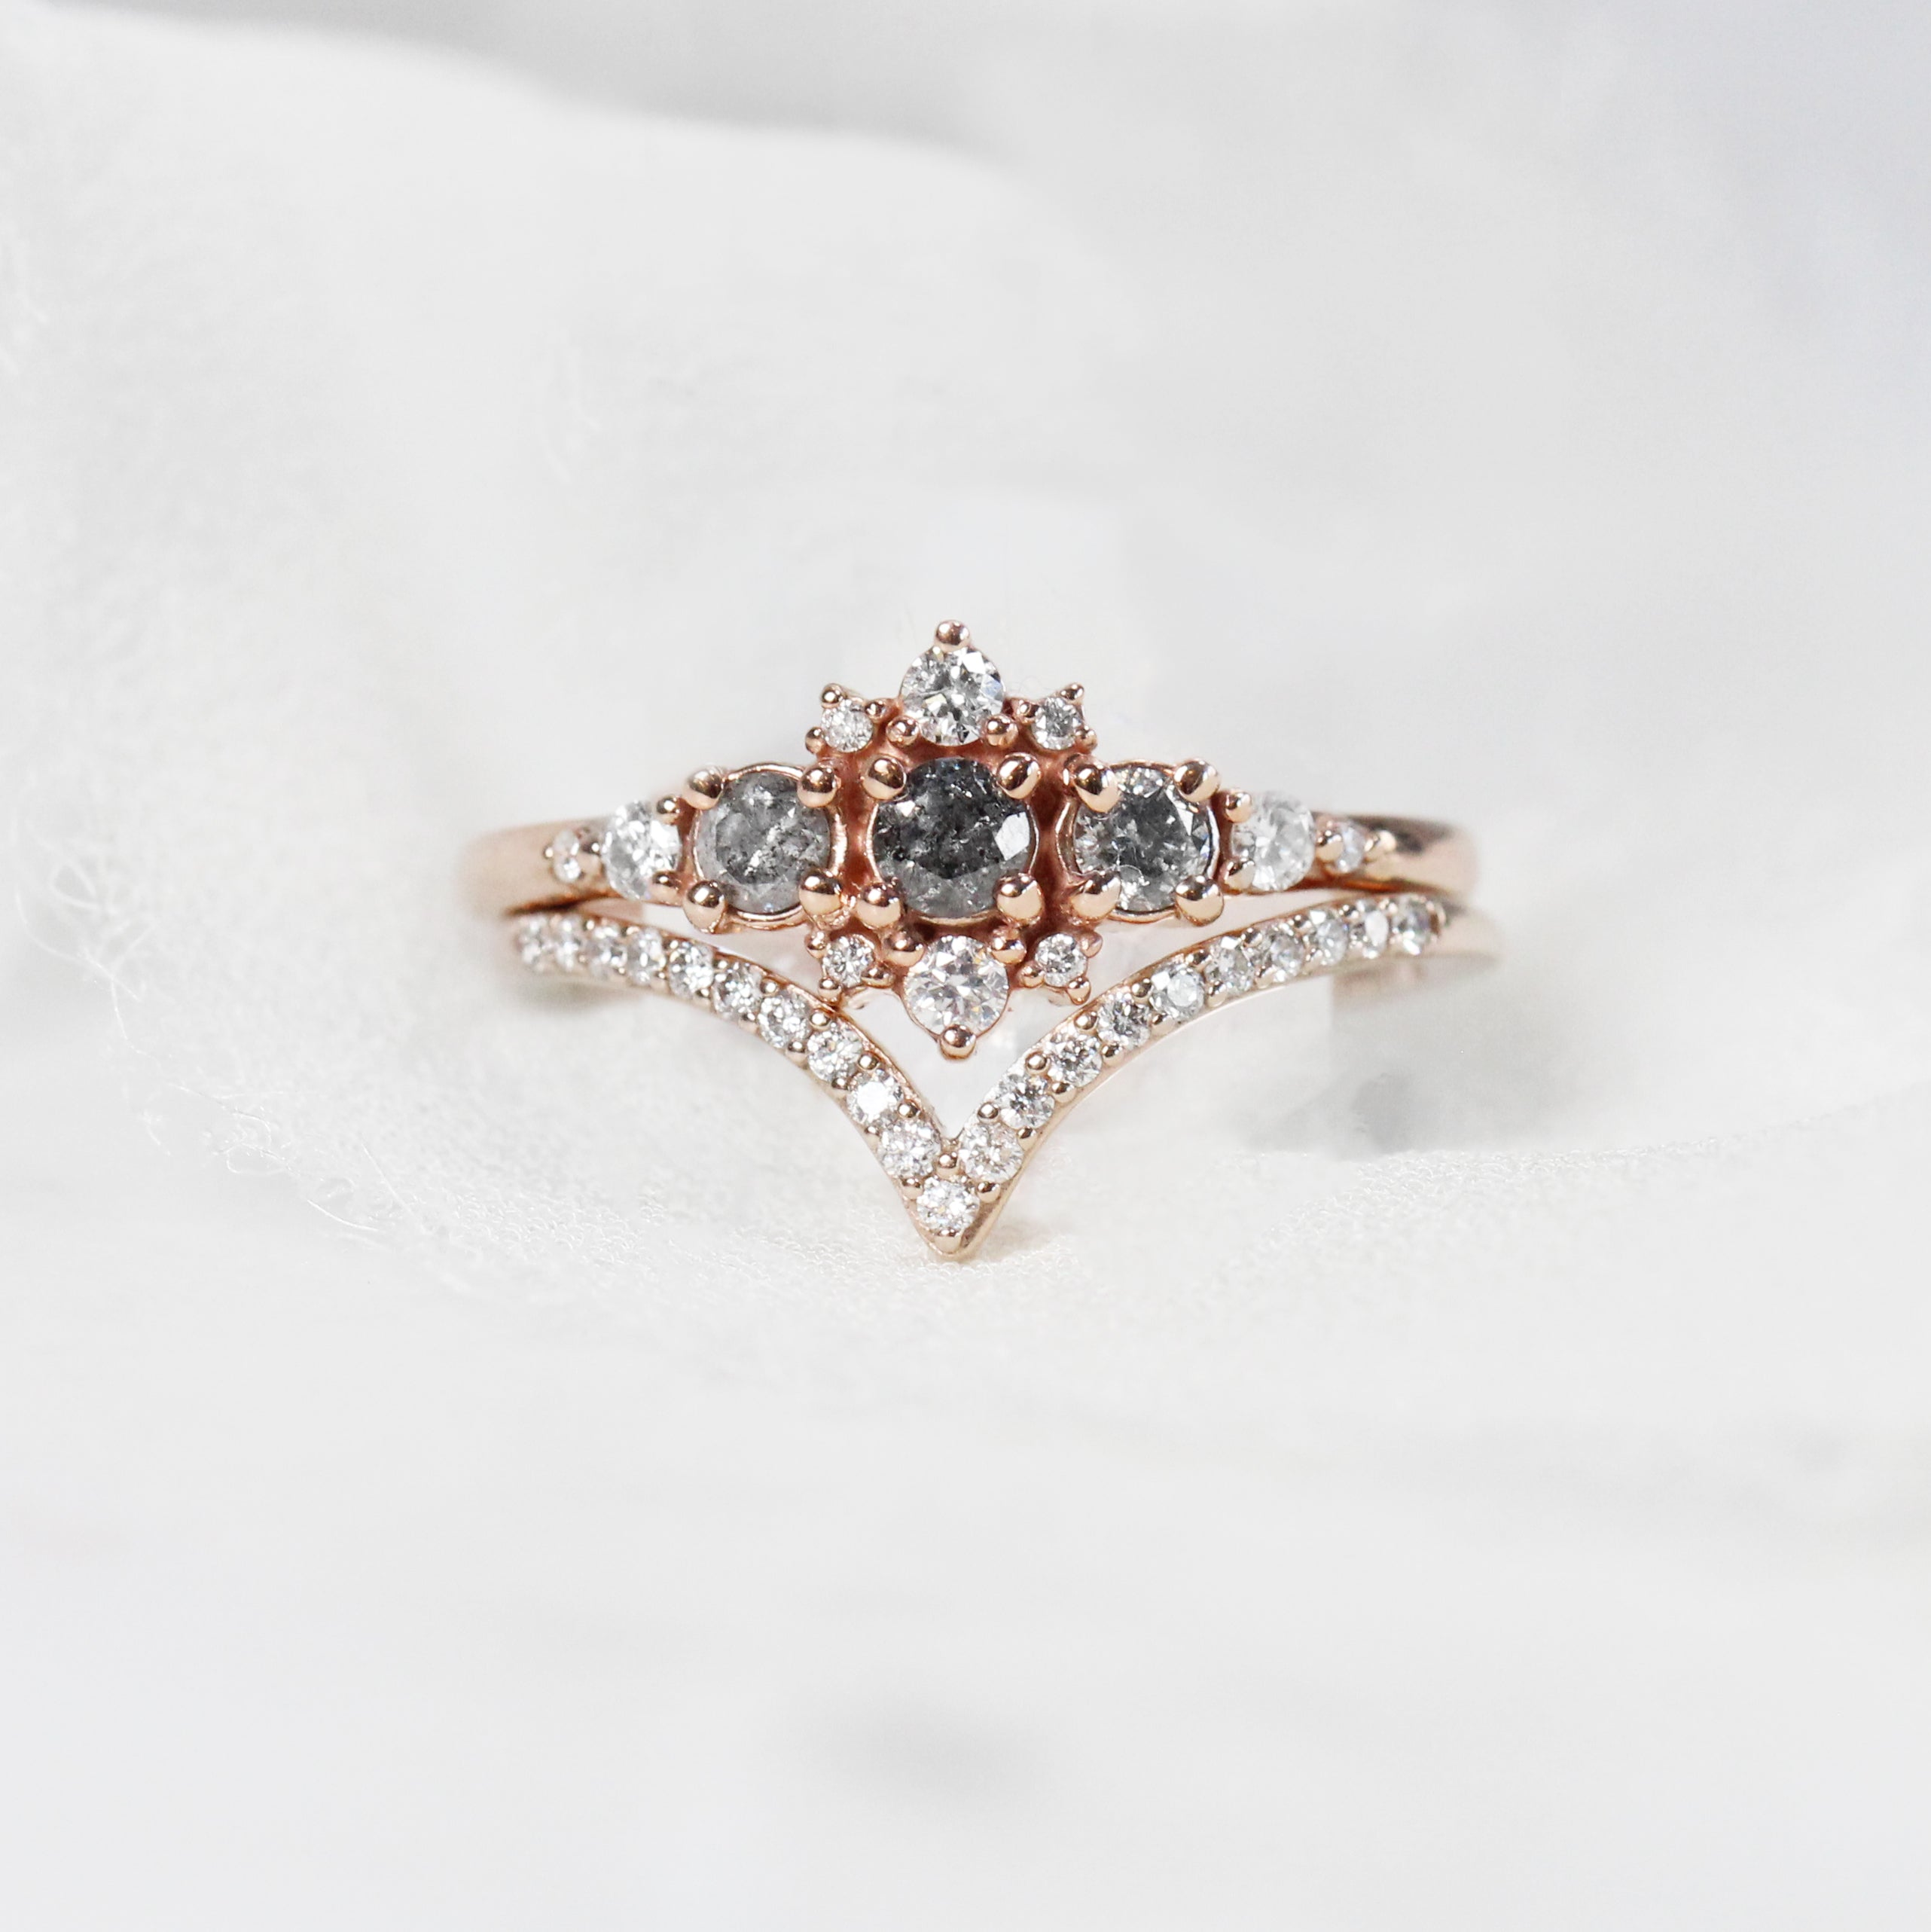 Victoria Ring with Three Celestial Gray Diamonds - Your choice of gold - Custom - Salt & Pepper Celestial Diamond Engagement Rings and Wedding Bands  by Midwinter Co.